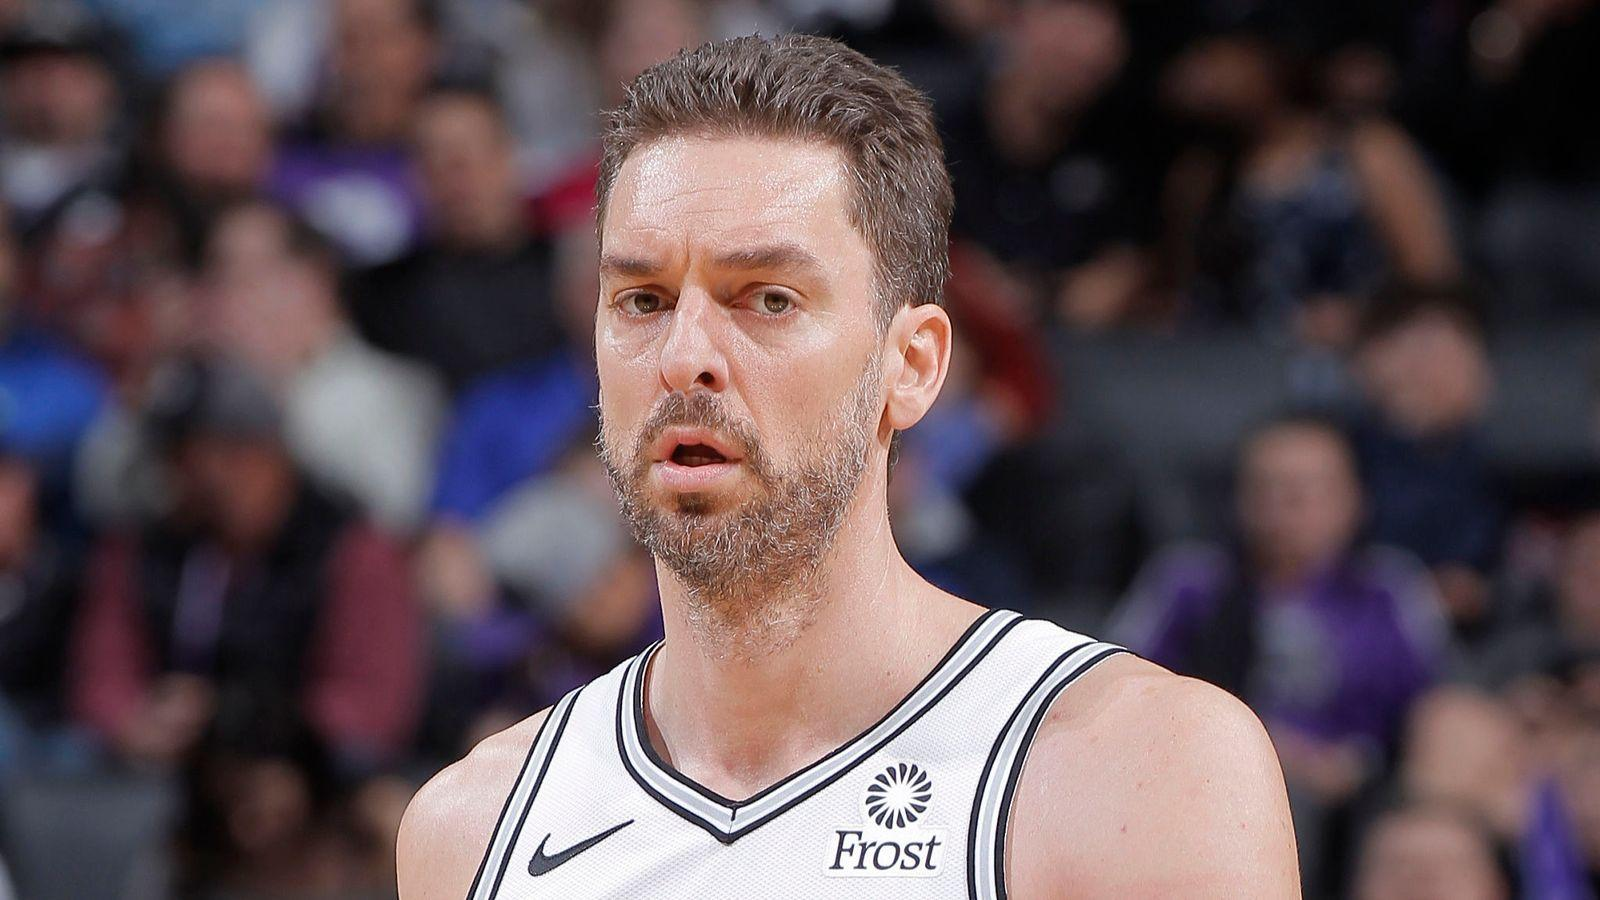 Pau Gasol signs for Milwaukee Bucks from San Antonio Spurs